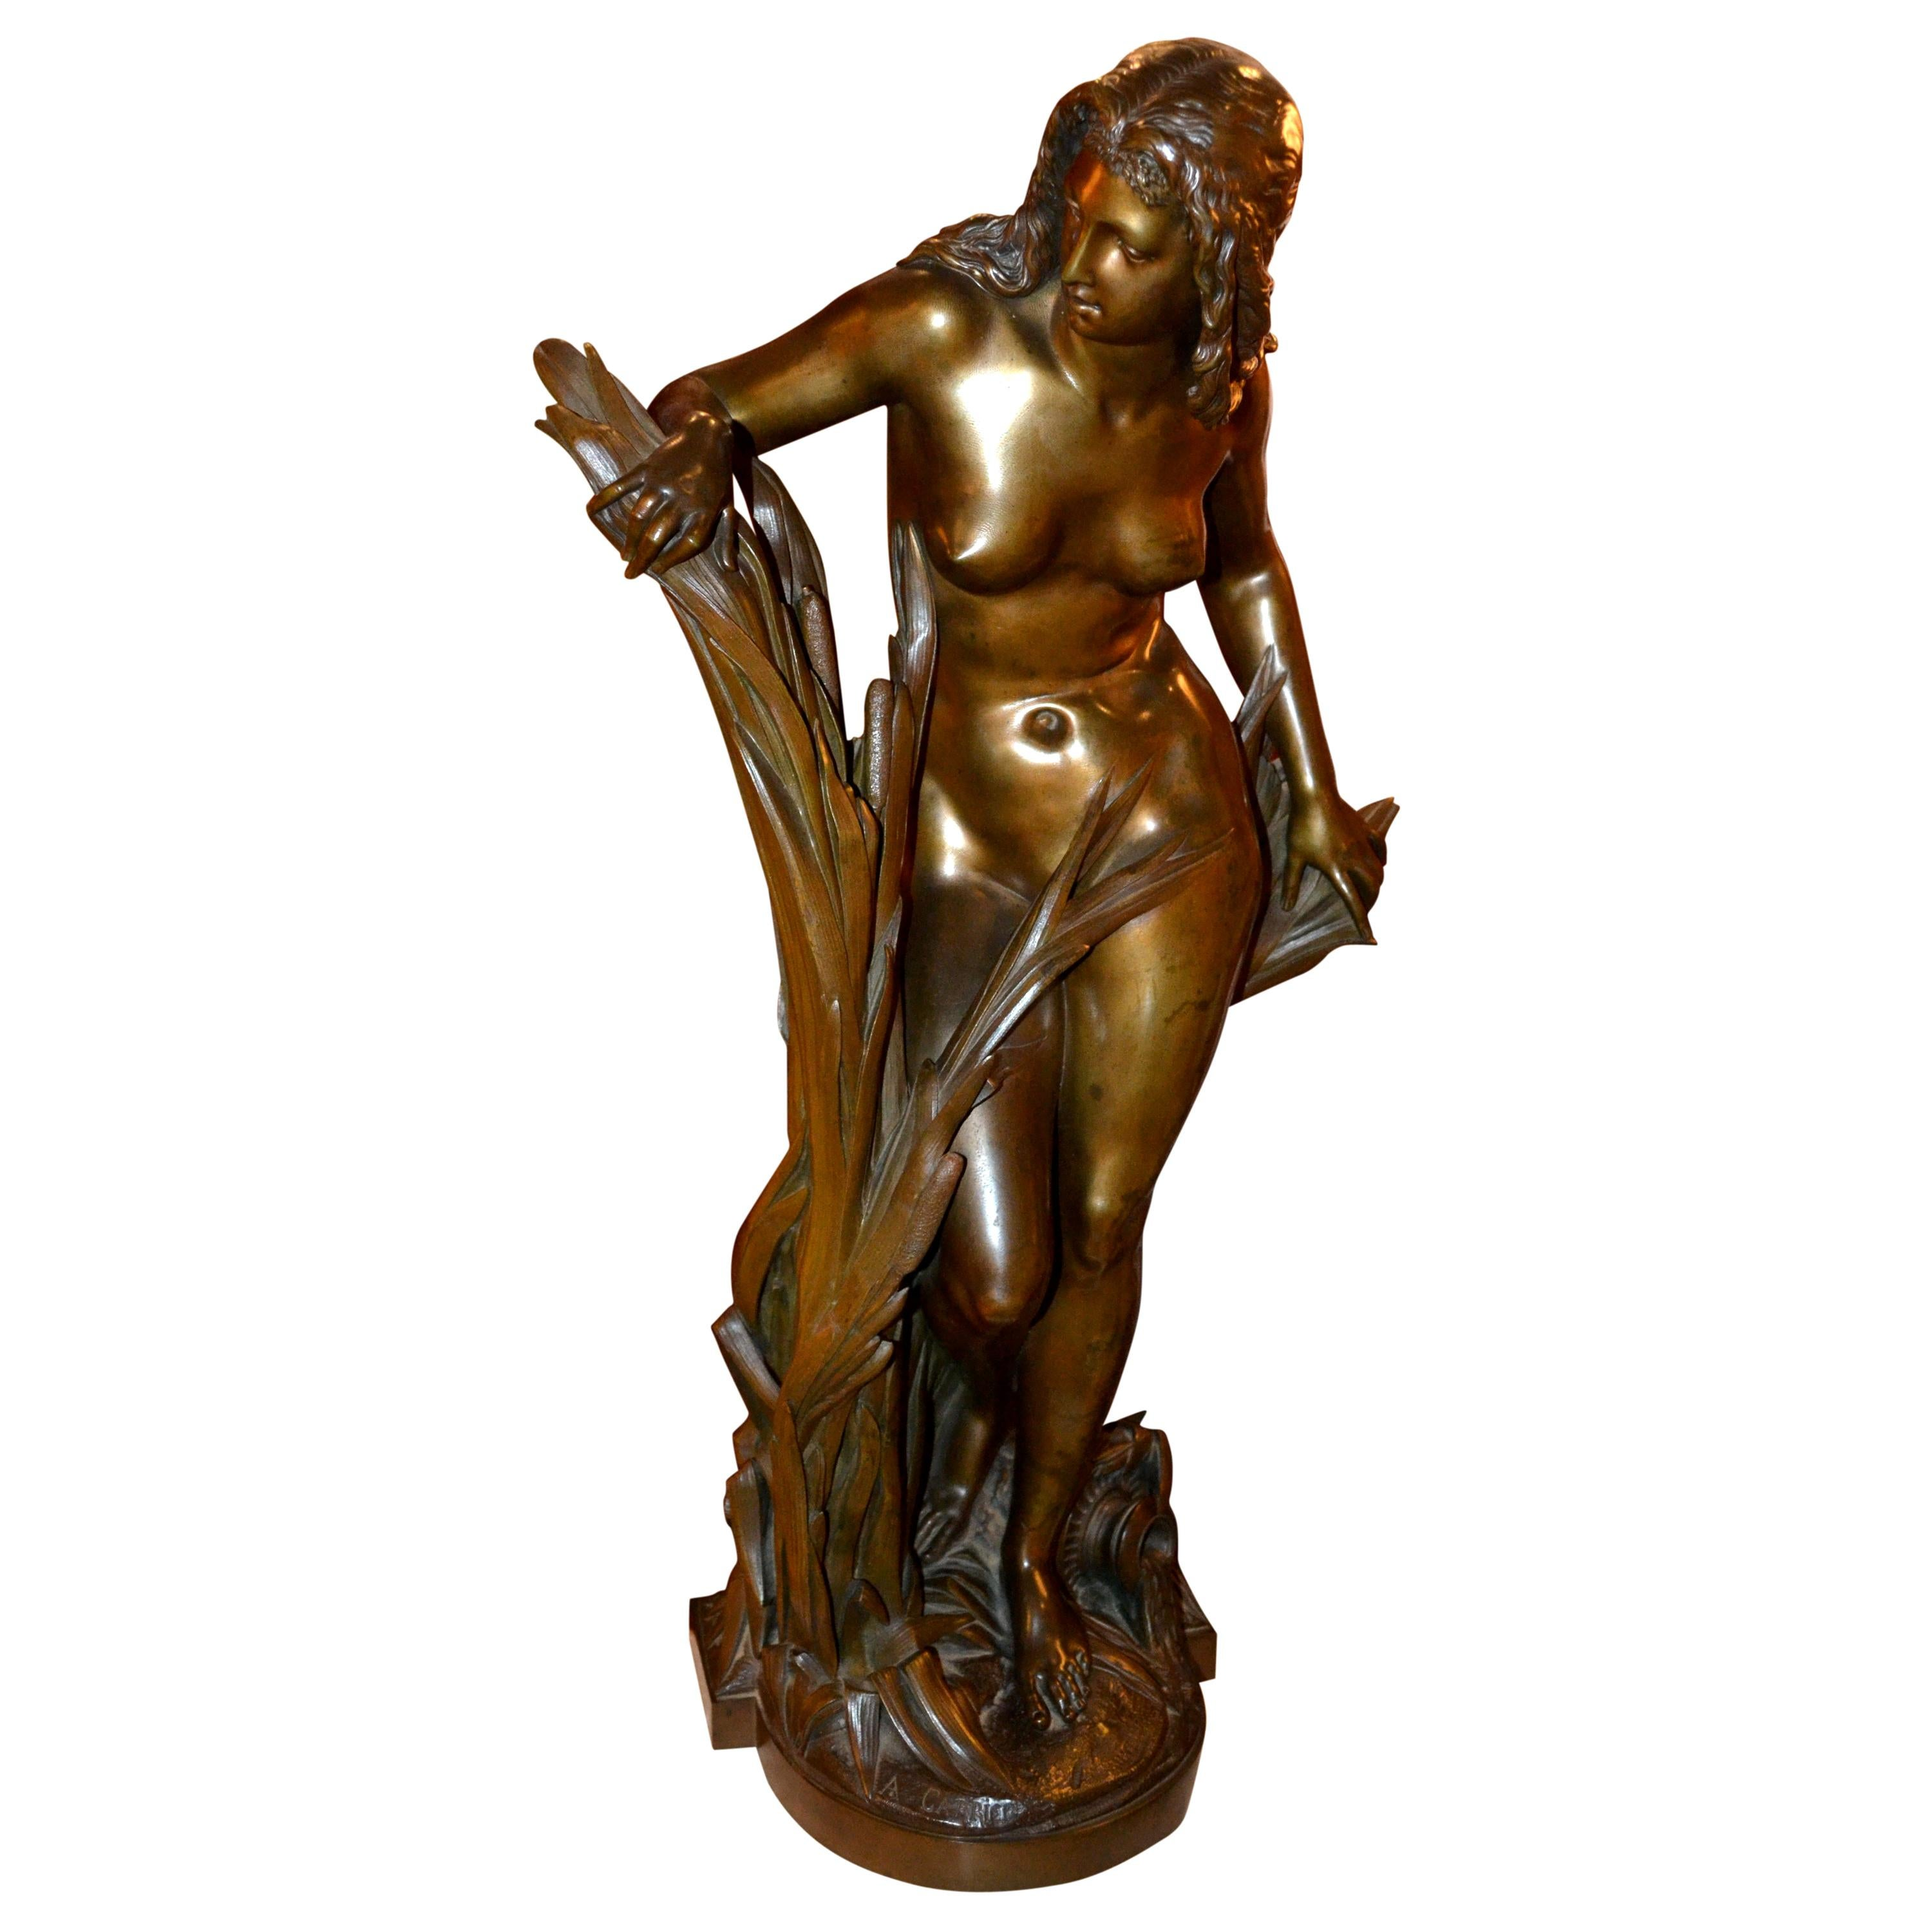 19th Century Bronze Statue of a Nymph by A. Carrier